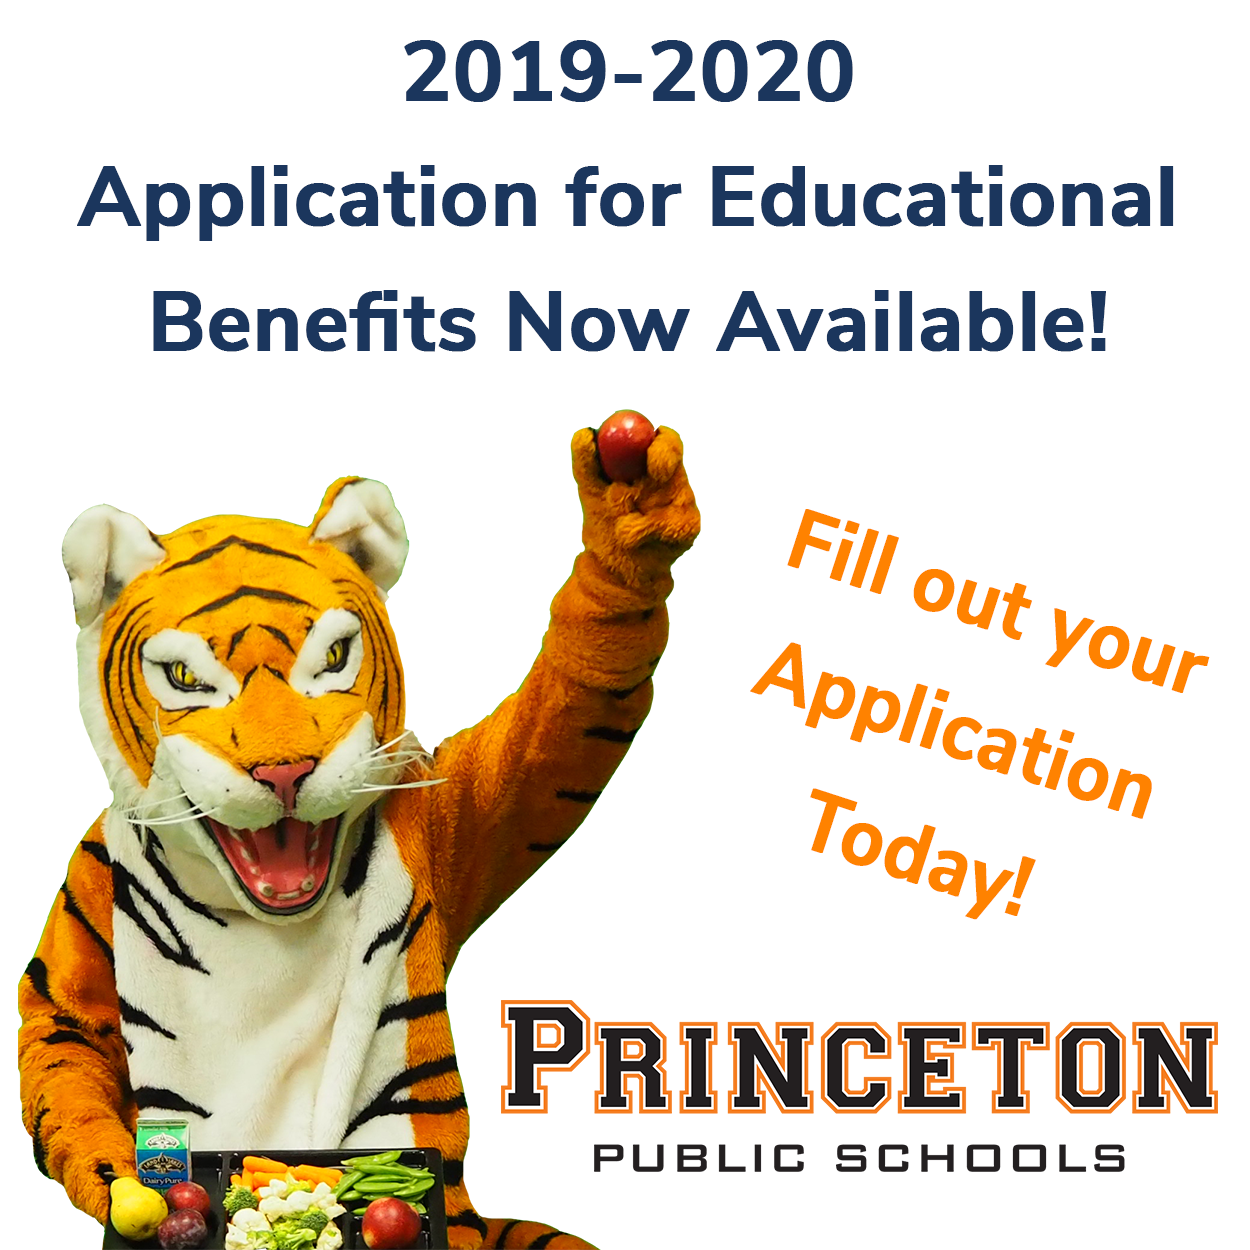 Tiger mascot holding apple and tray of lunch